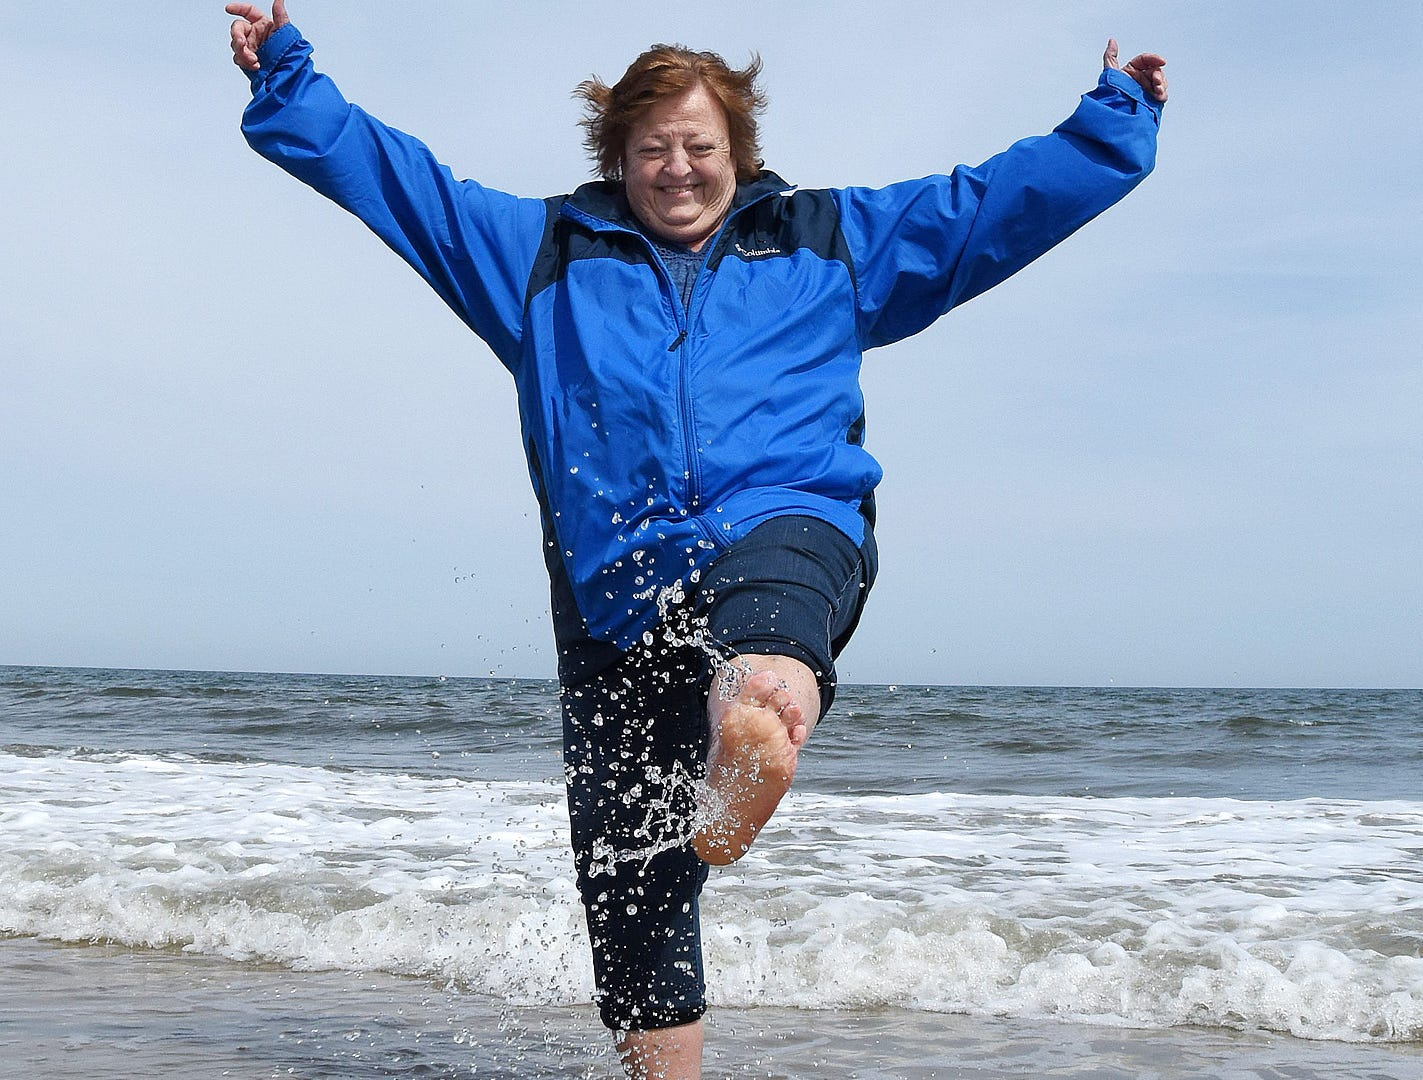 Roxanne Bross from Woodbridge, Va. splashes in the 48-degree-water as the first day of spring had cooler temperatures at Rehoboth Beach Wednesday.